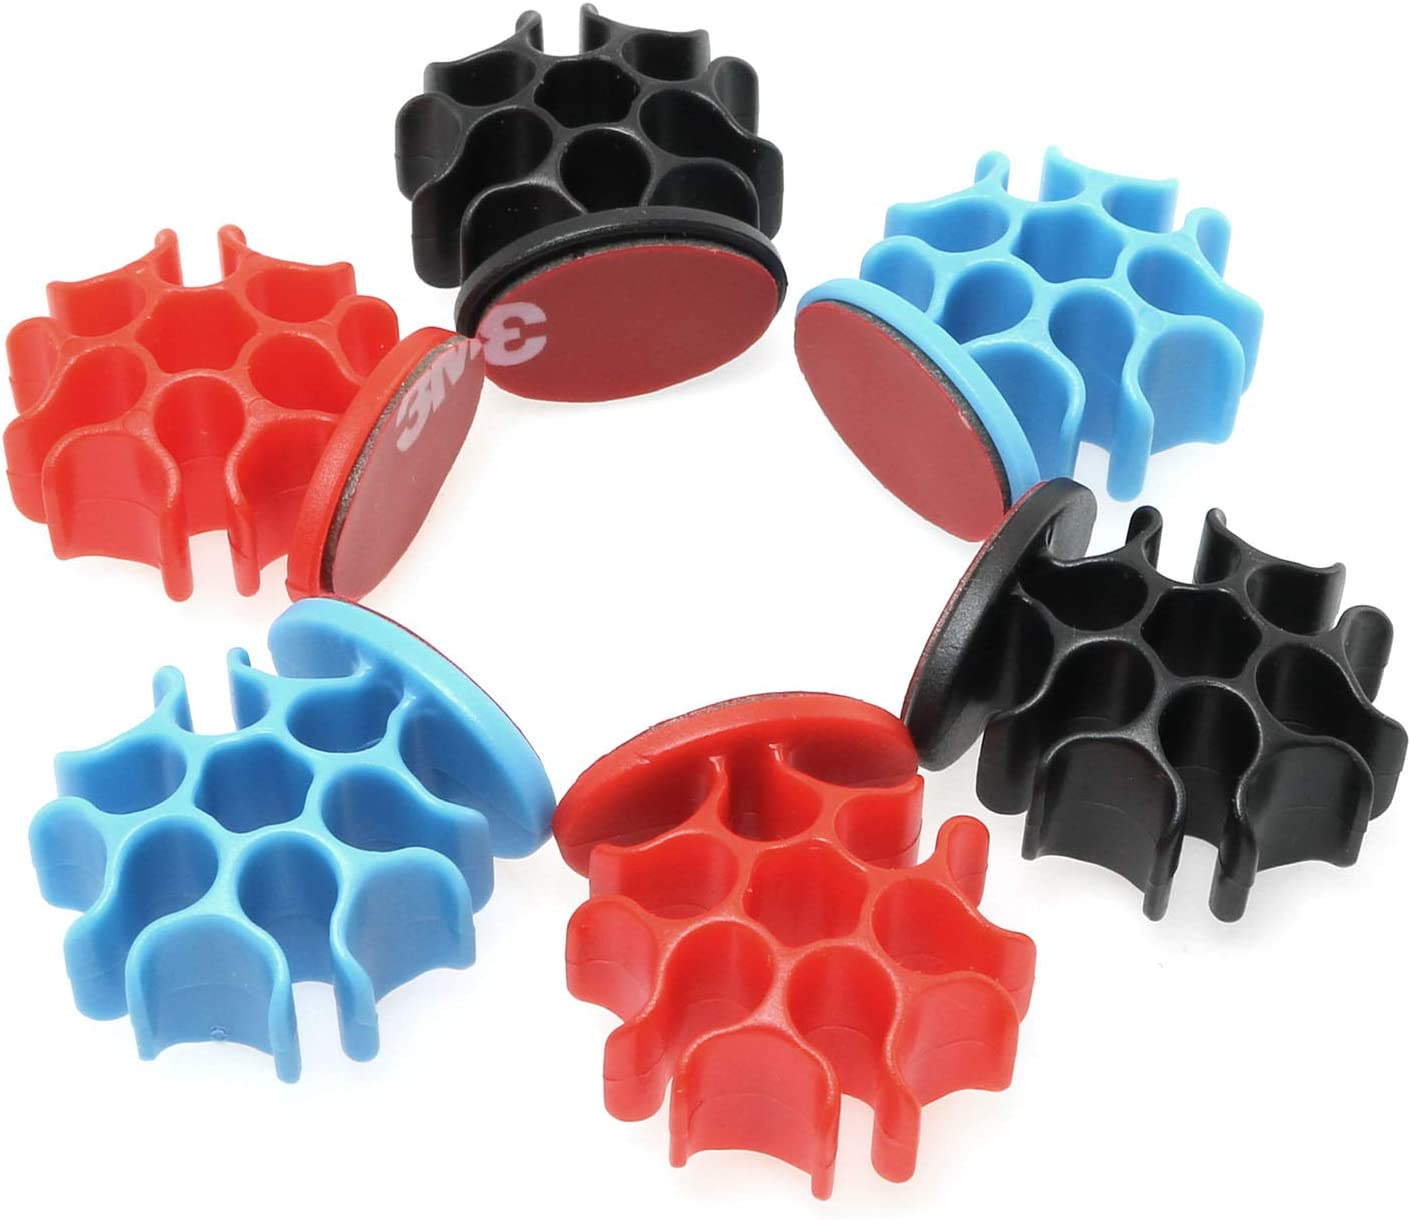 Magic&shell Cable Clips 12PCS Coral Shaped Cable Holder Multipurpose Cord Management for Organizing Cable Cords Home and Office, Self Adhesive Cord Organiser